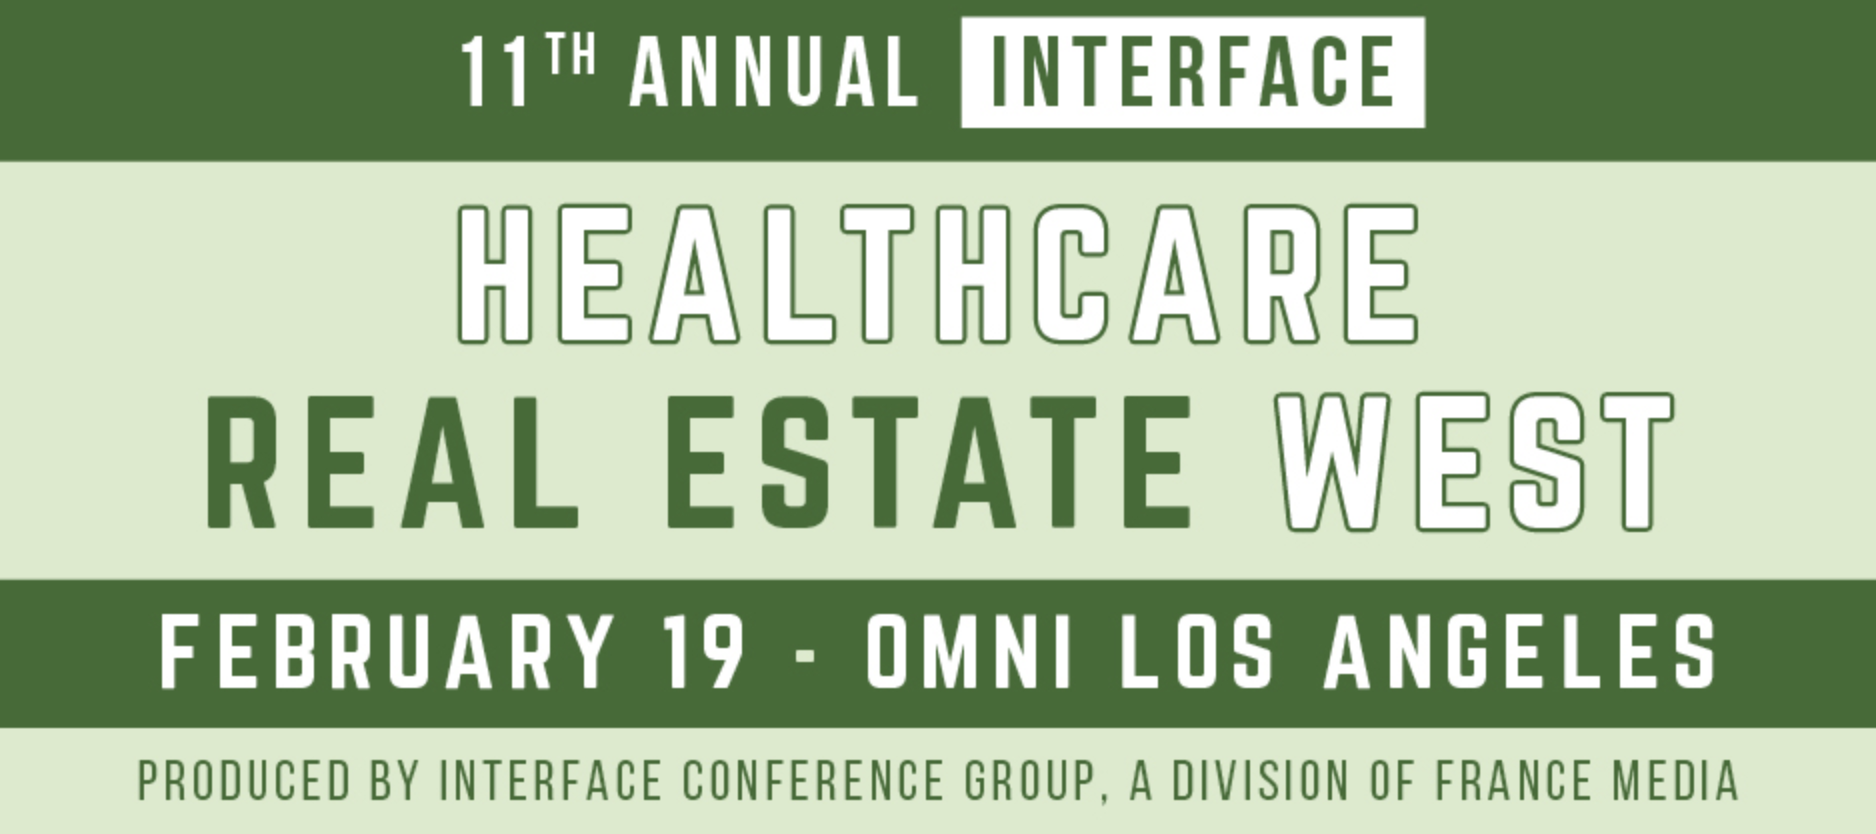 InterFace Healthcare Real Estate West - Los Angeles February 19, 2020